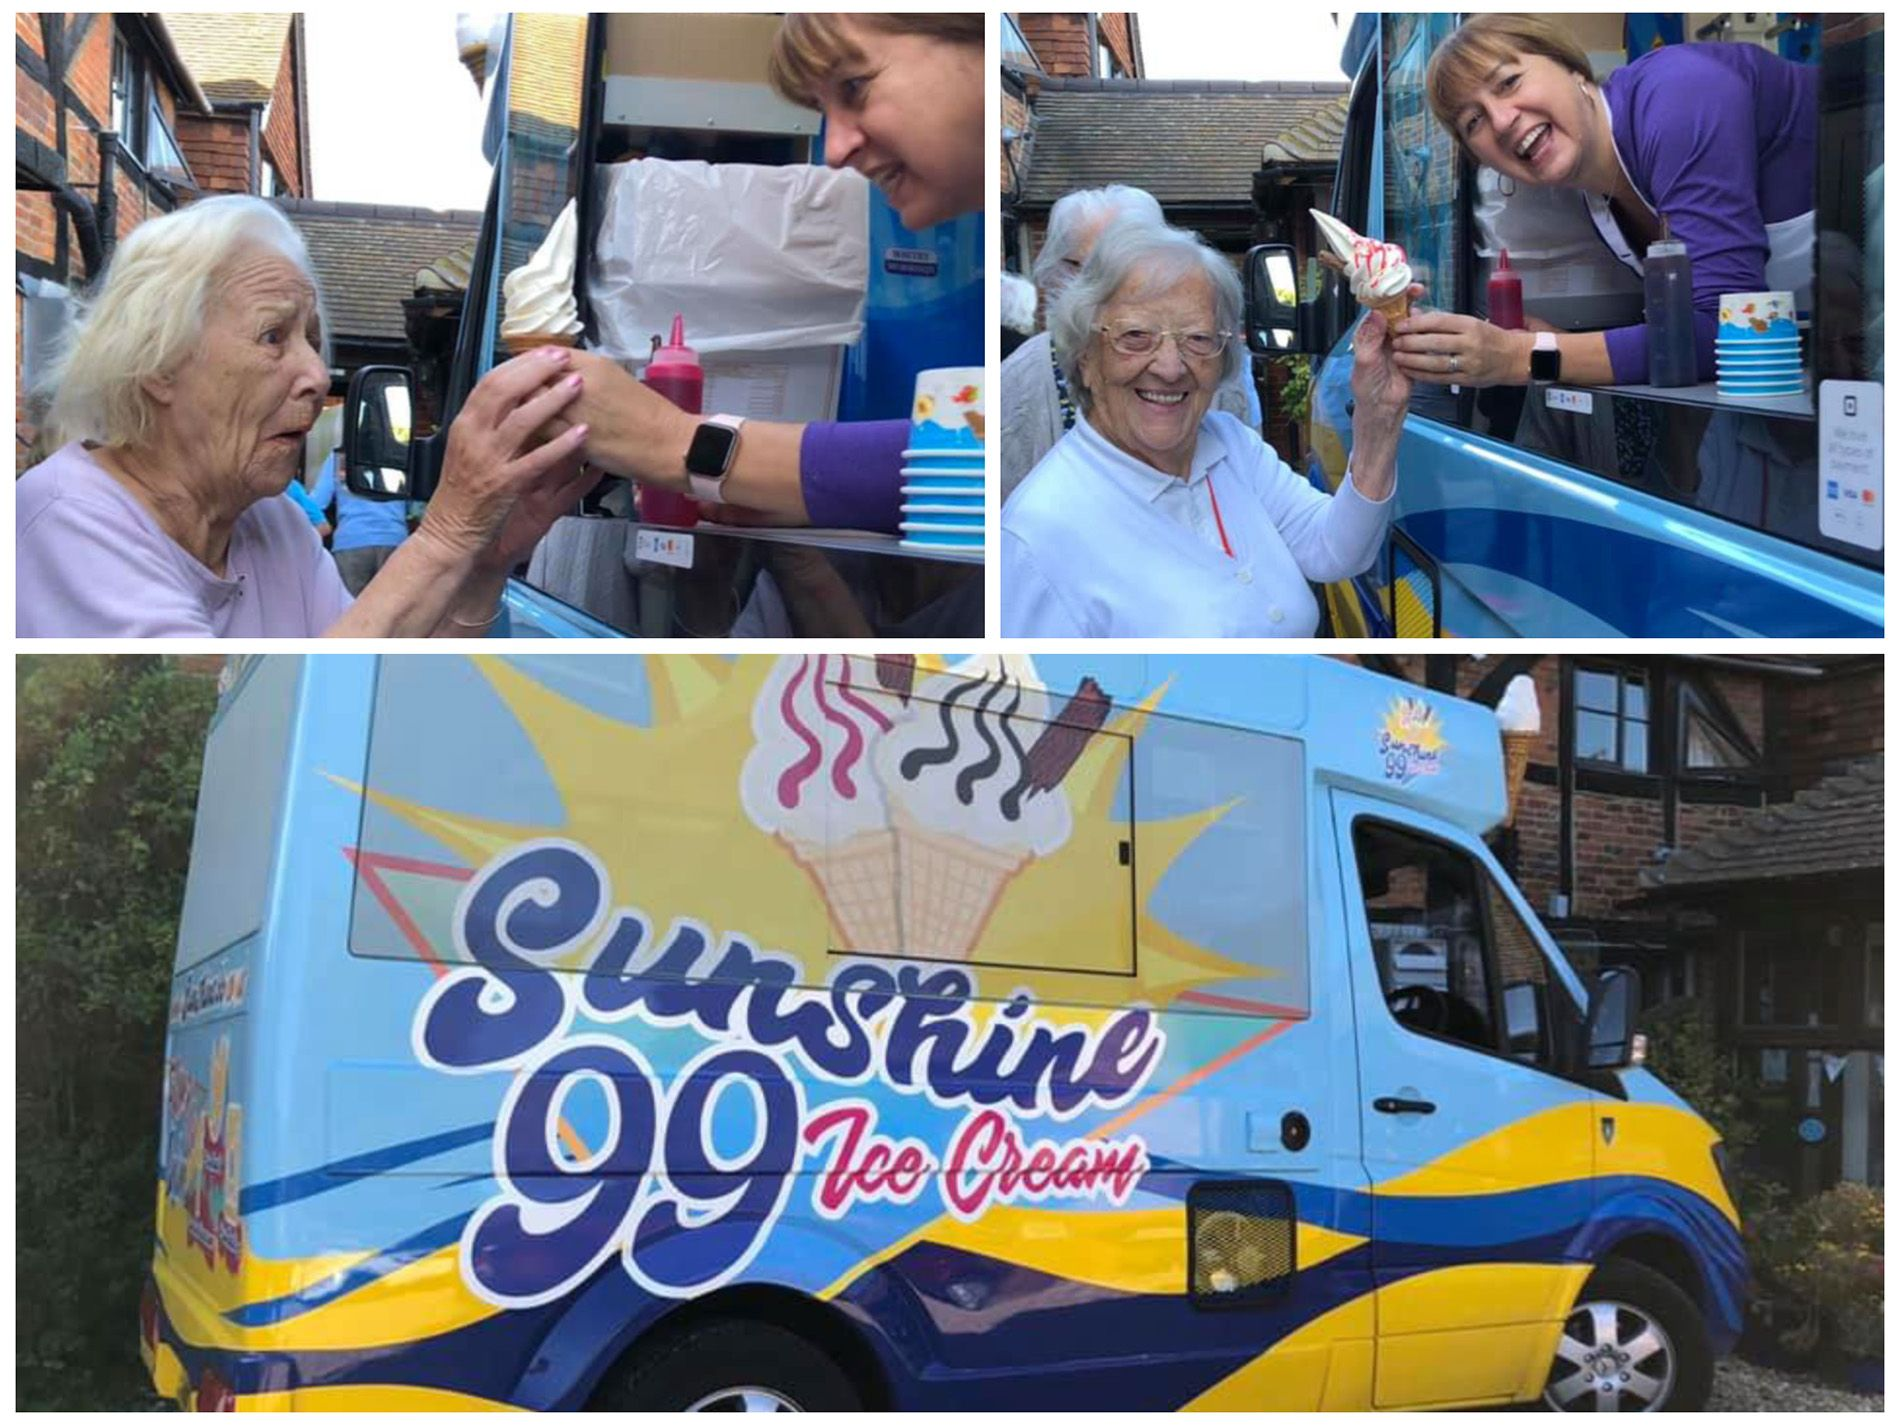 Old Raven House Care Home residents enjoy Flake 99 ice creams.